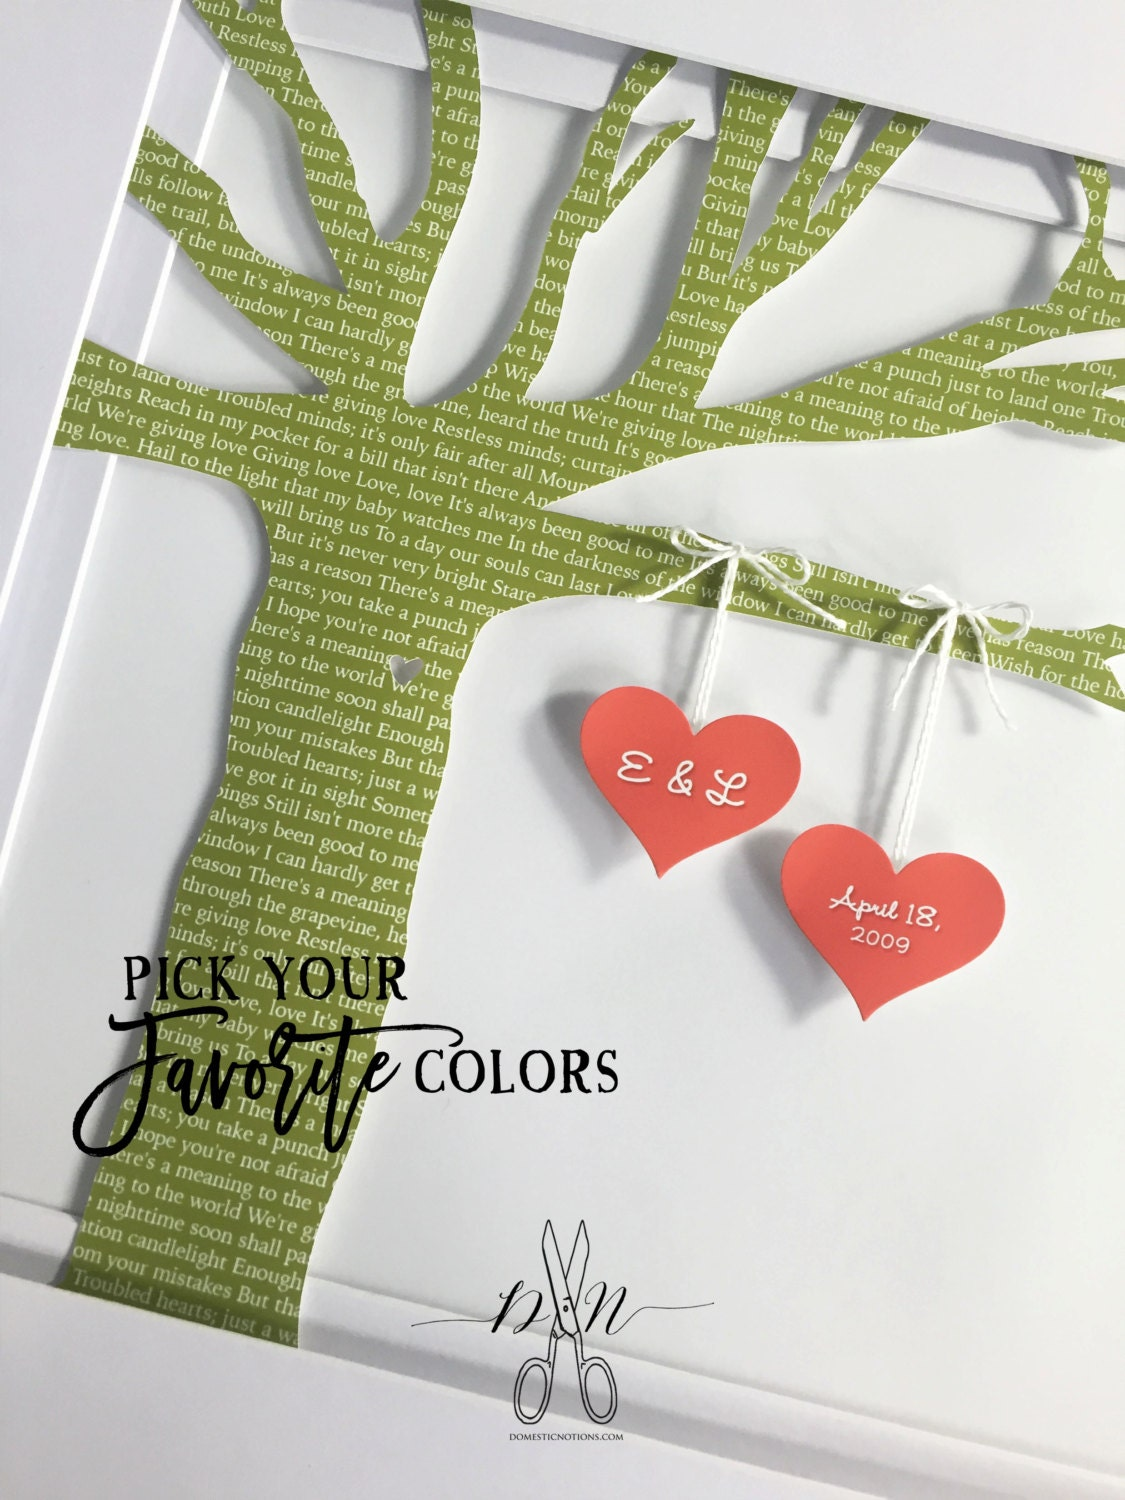 Wedding Gifts For Couple Etsy : Wedding Gift for Couple Unique Wedding Gift Idea